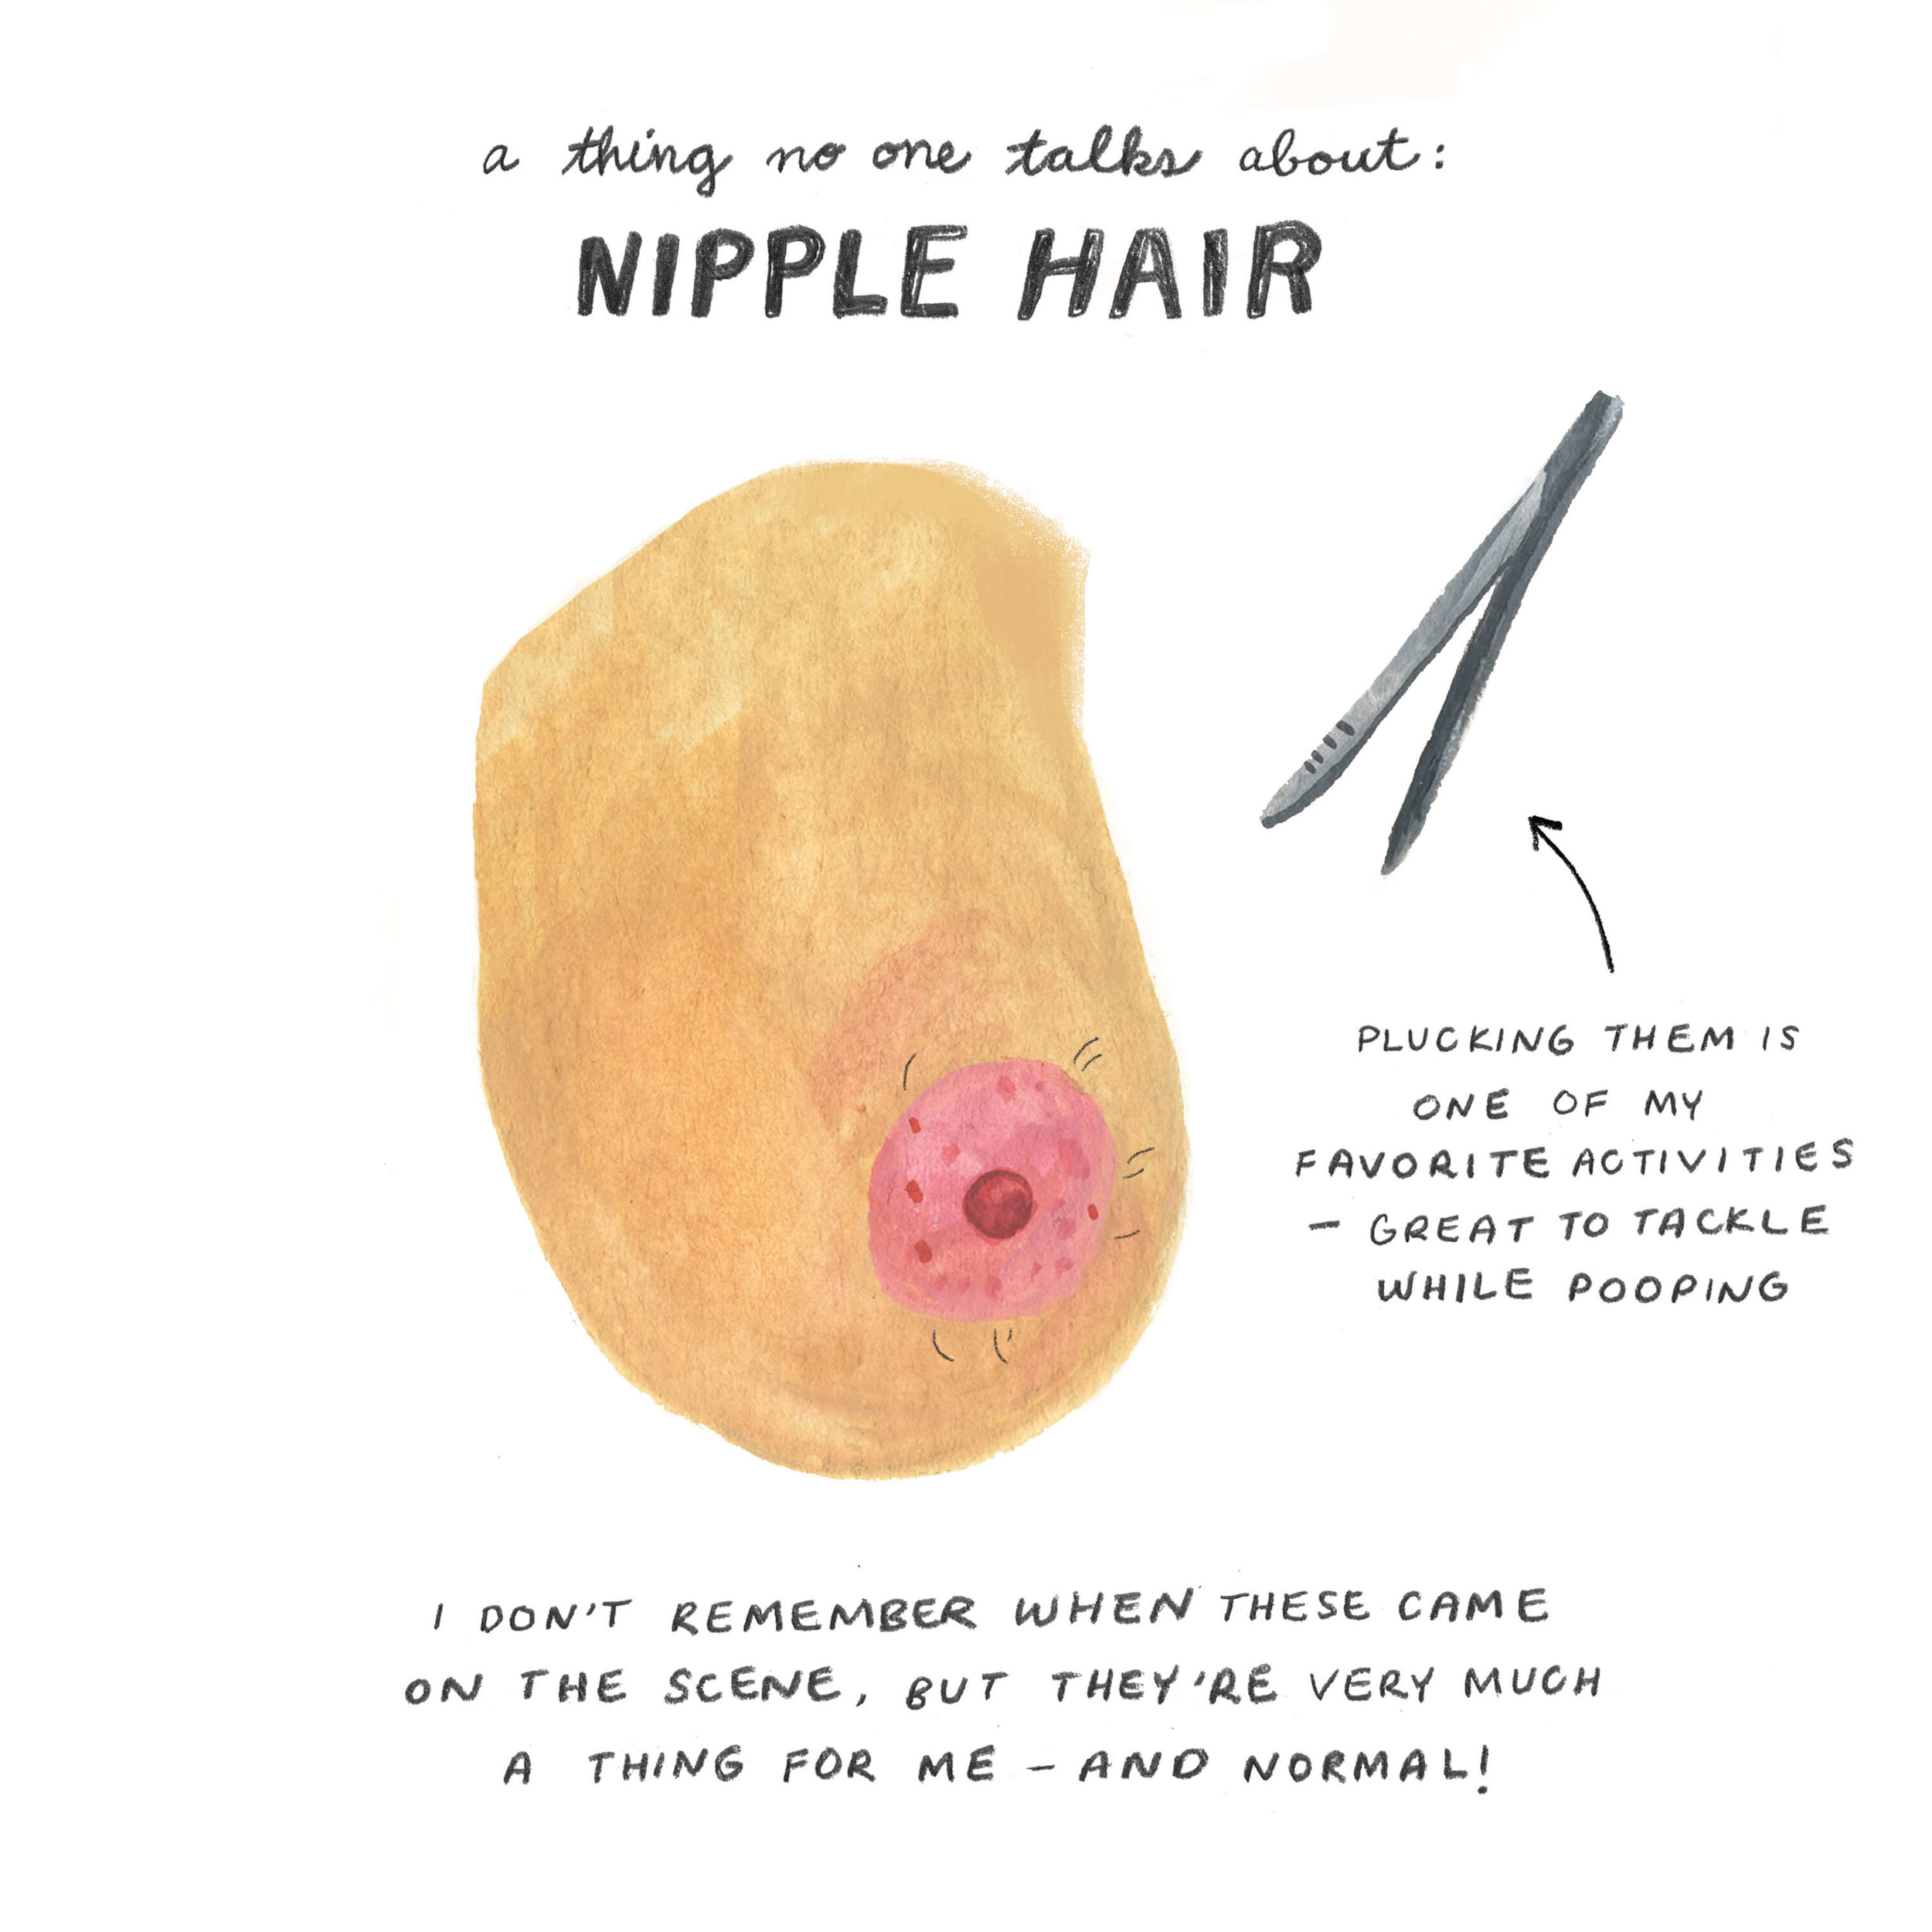 NippleHair.jpg